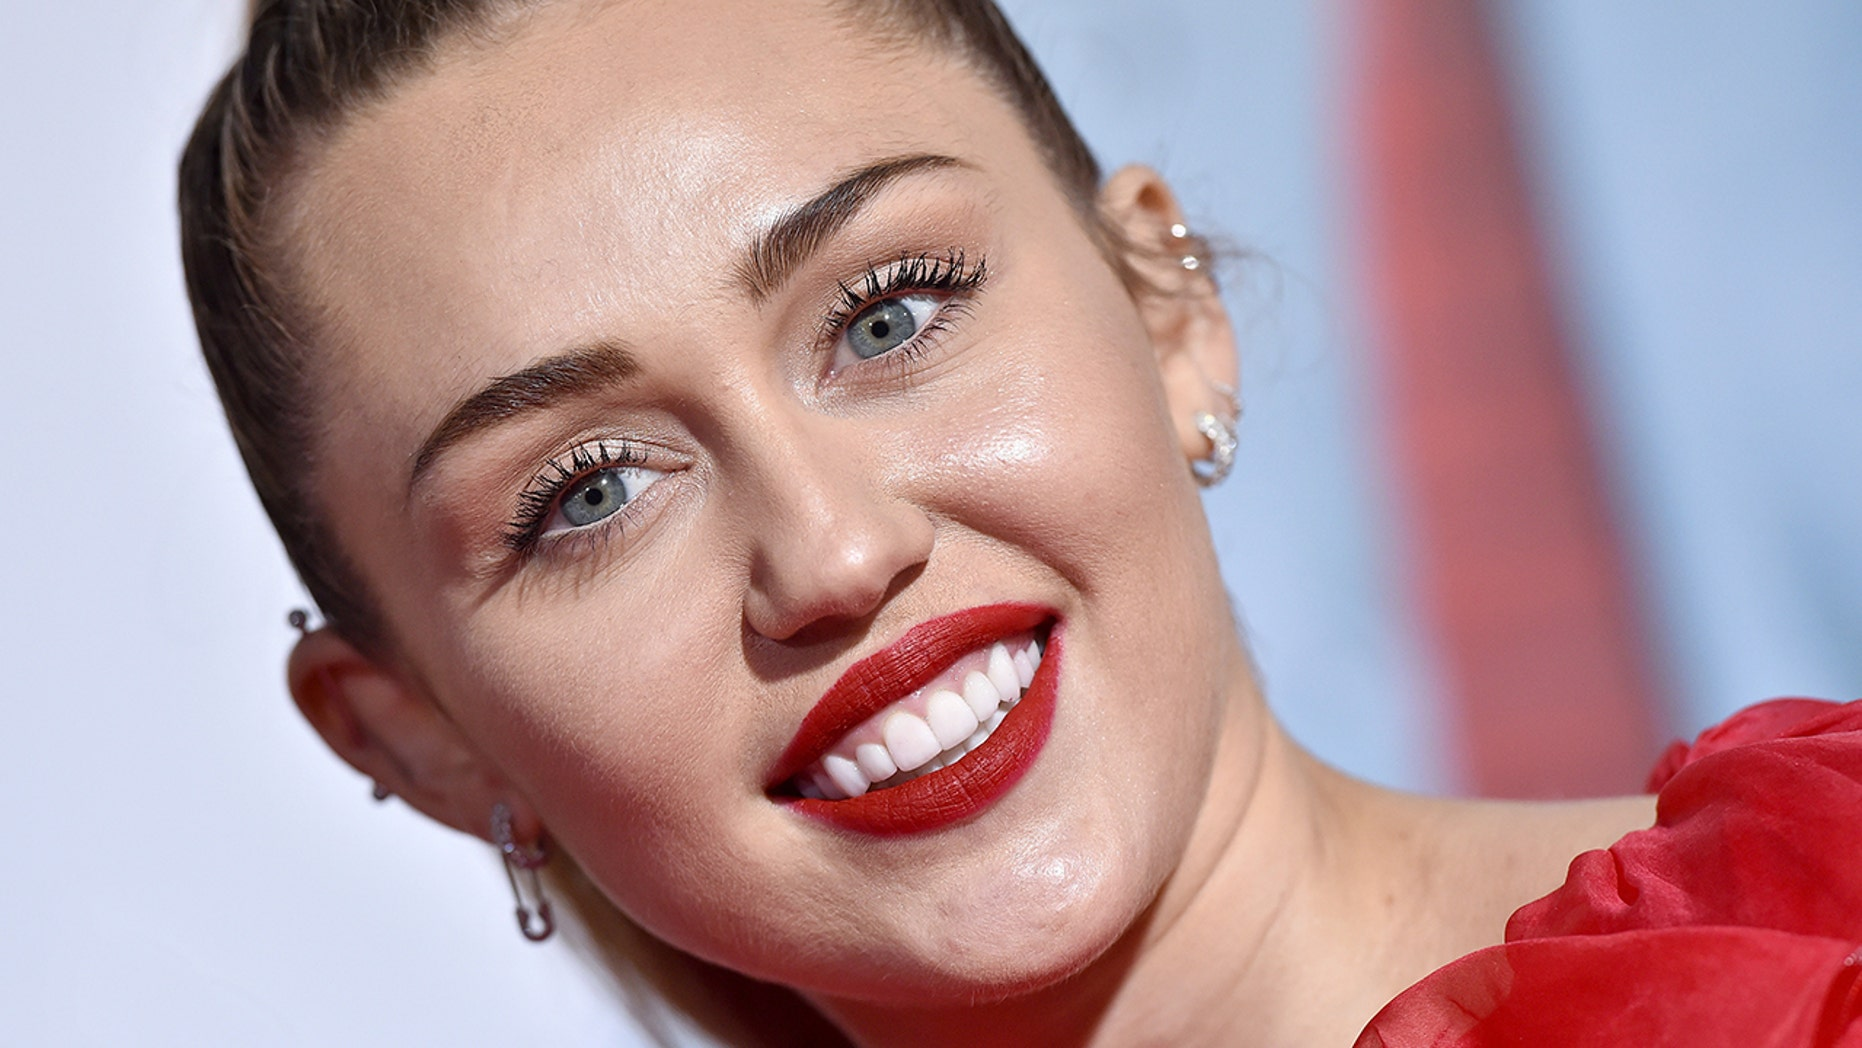 Miley Cyrus shares saucy Valentine's Day photo for Liam Hemsworth